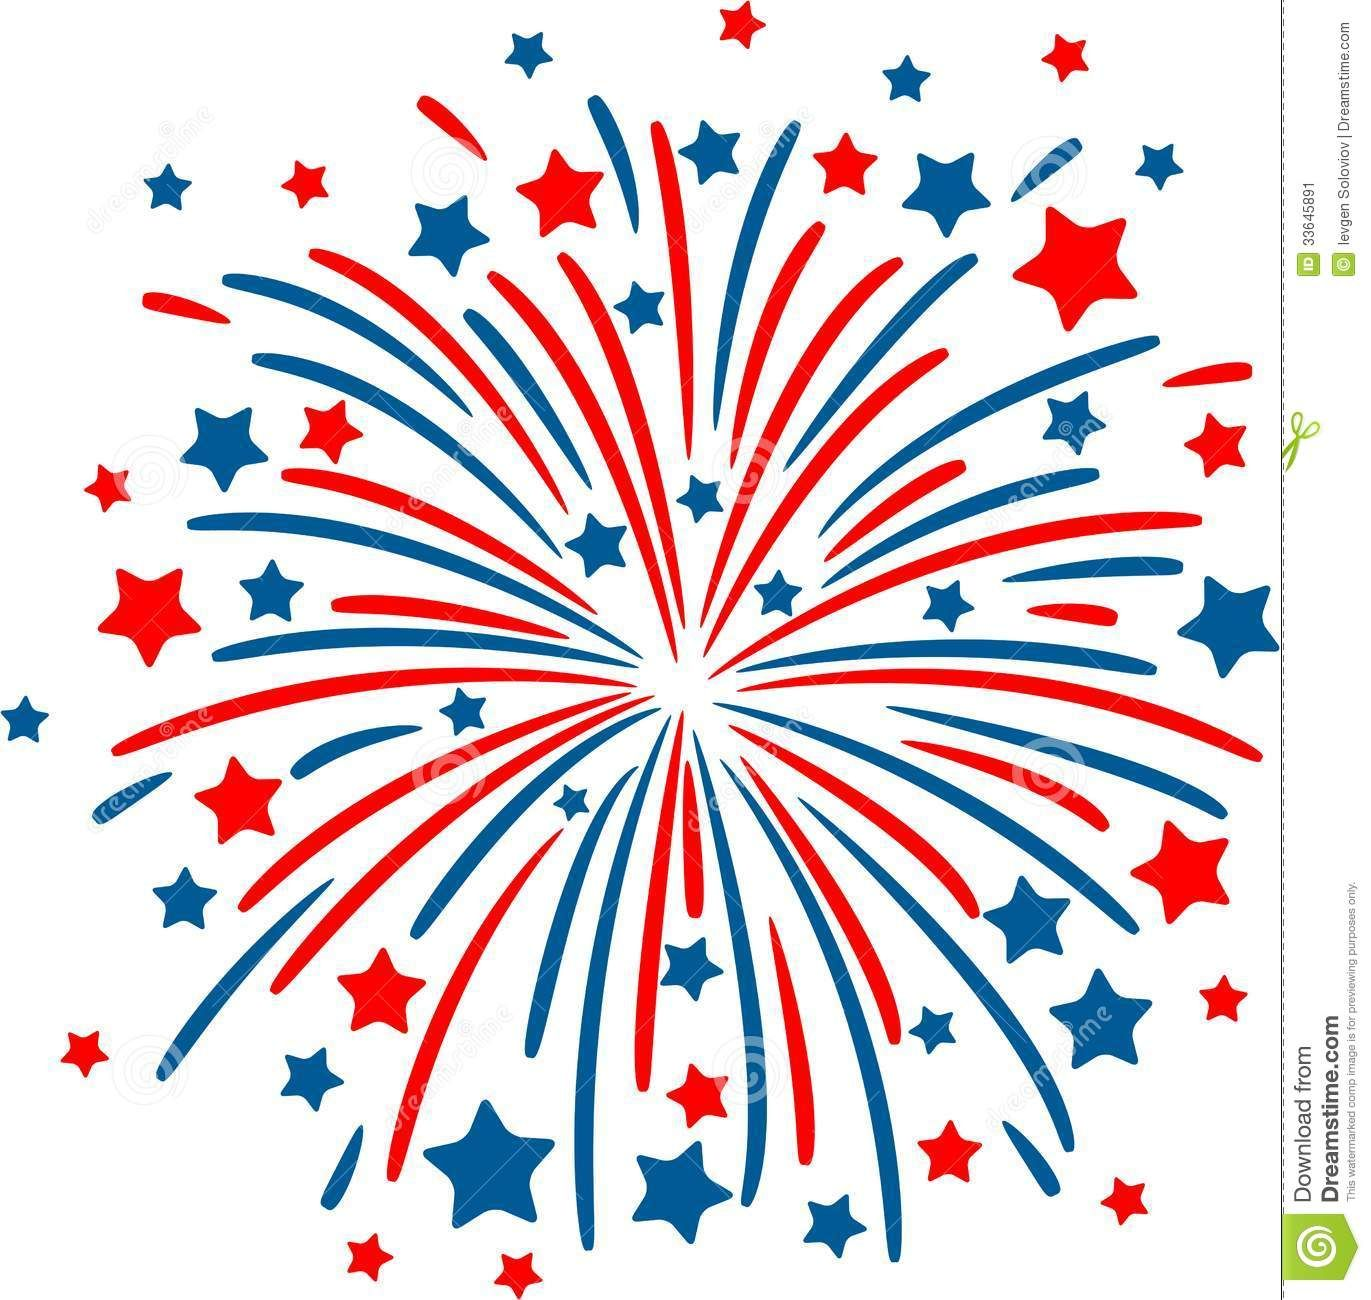 hight resolution of fireworks clipart no background clipart panda free clipart images